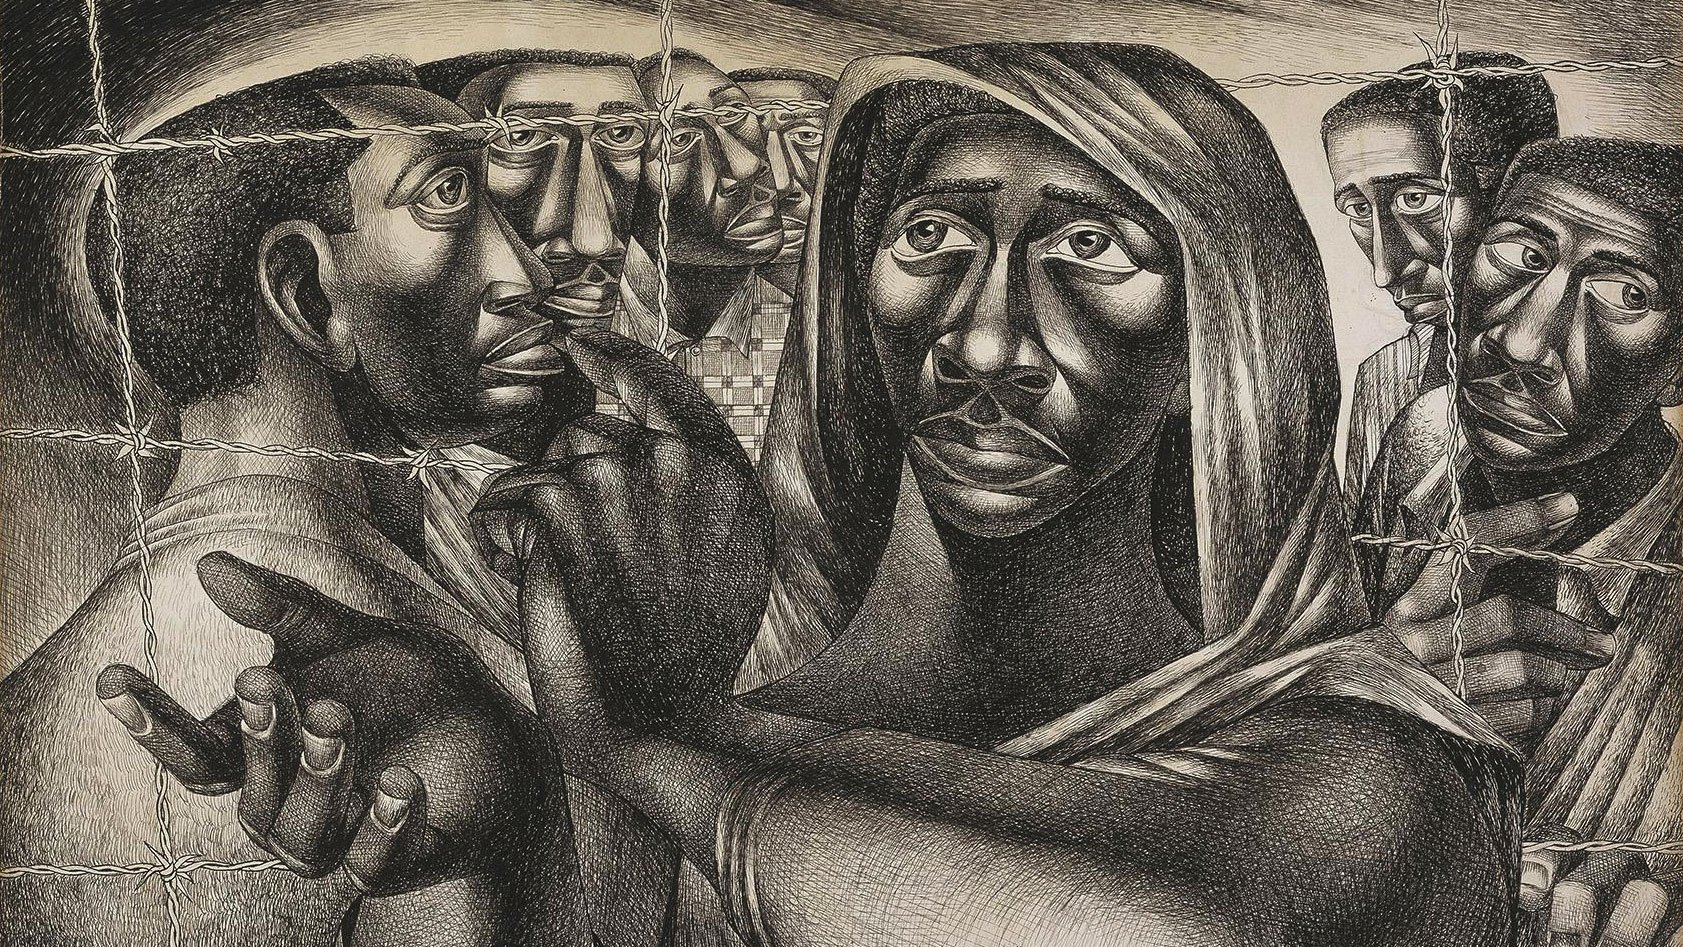 Trenton Six by Charles White, 1949